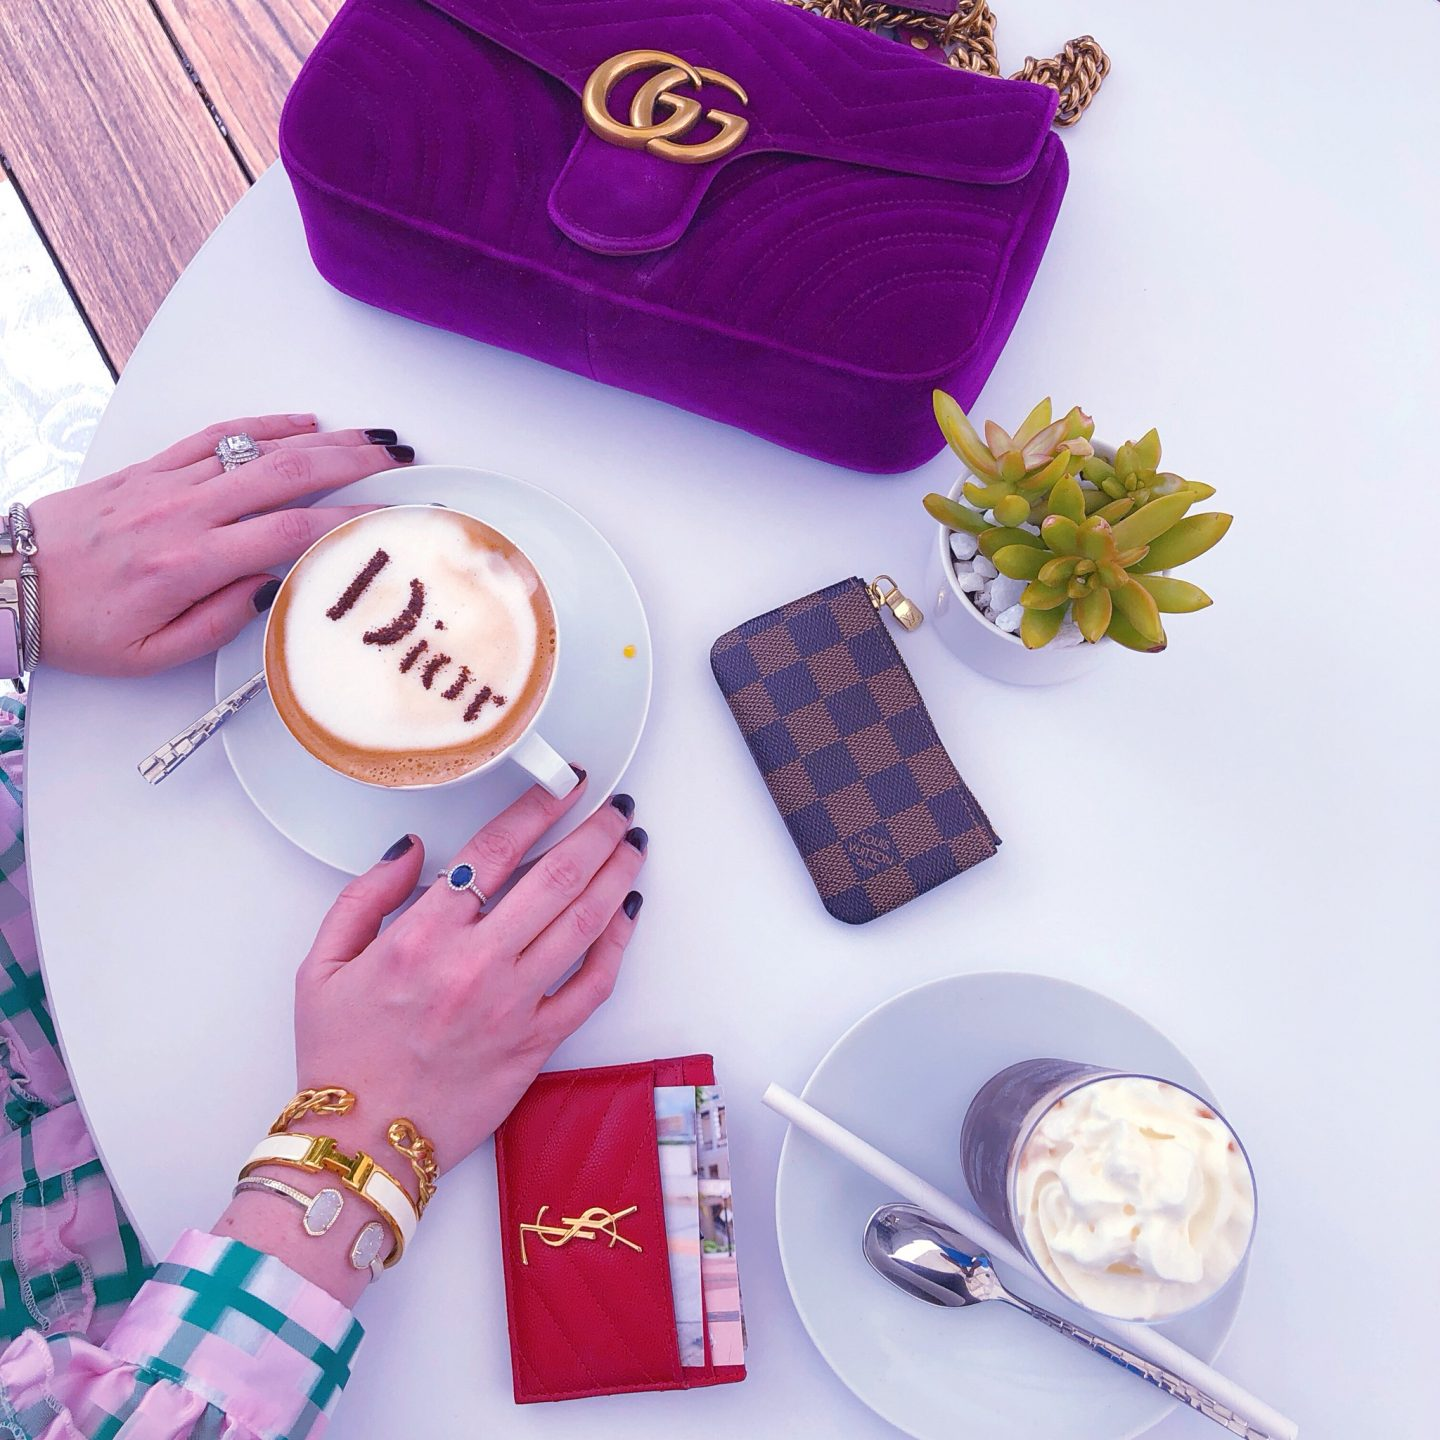 Dior Cafe Miami, cafe dior, cafe dior miami, what cafe dior miami looks like, dior latte, cafe dior latte, dior engraved latte, what dior latte looks like, gucci marmont velvet, ysl card case, saint laurent card case red, lousi vuitton damier ebene, louis vuitton key pouch